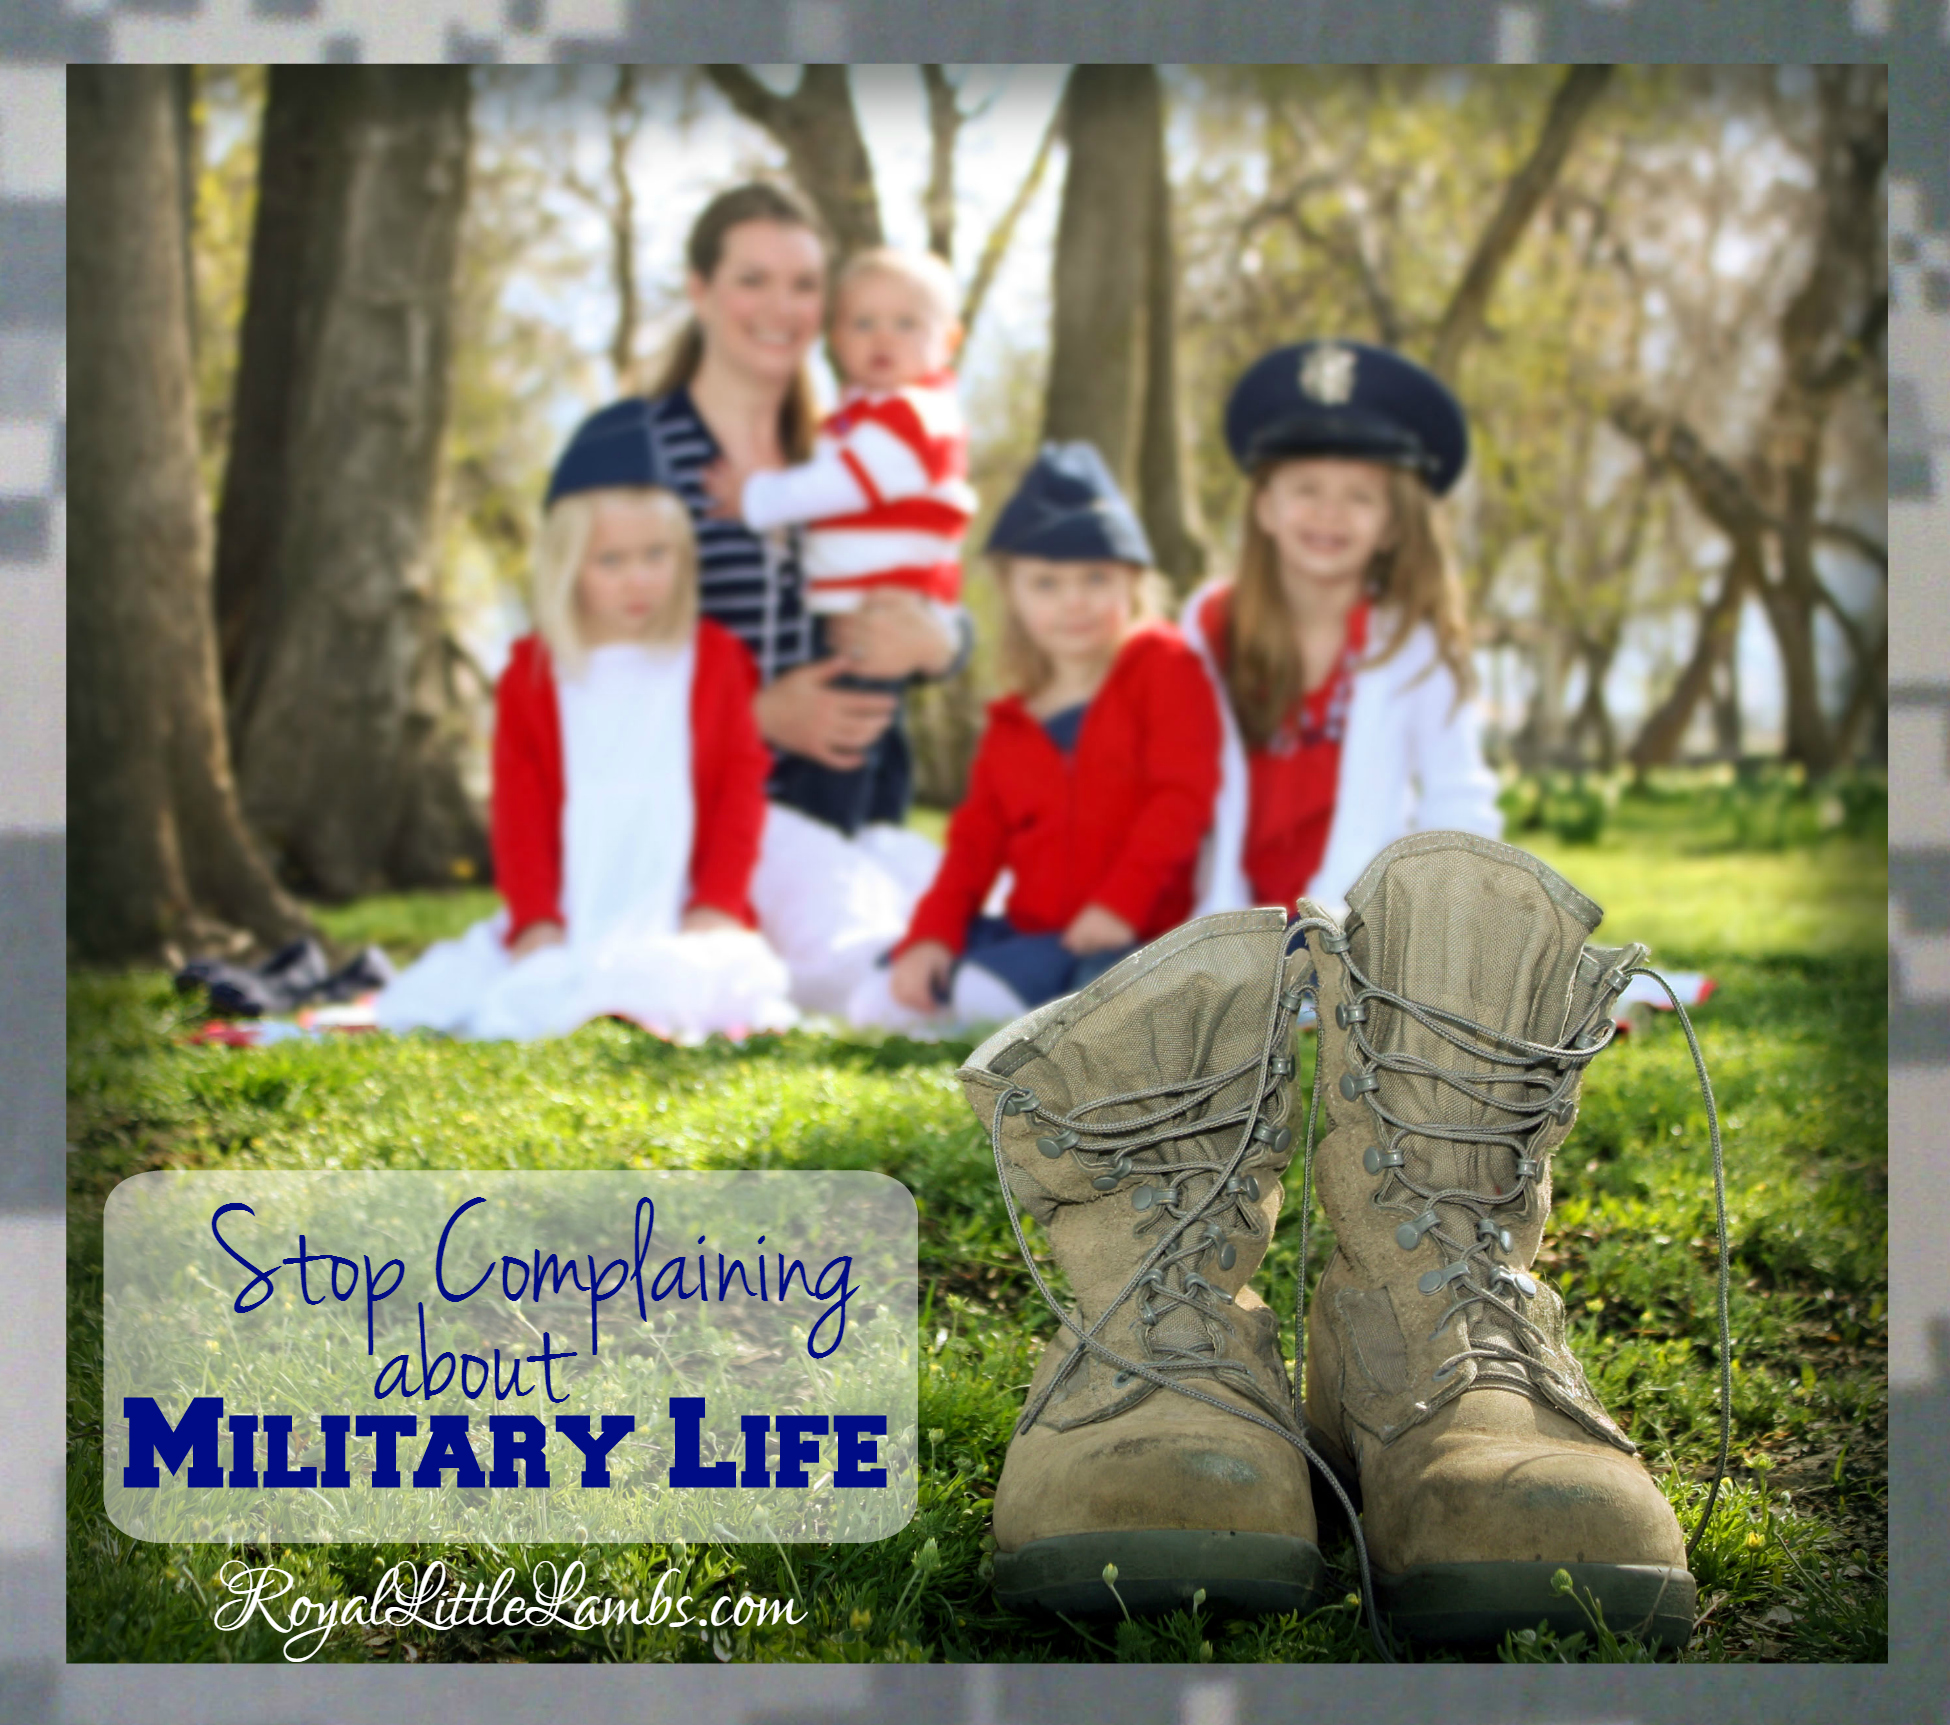 Stop Complaining About Military Life - I'm weary of the negativity and complaining about military life.